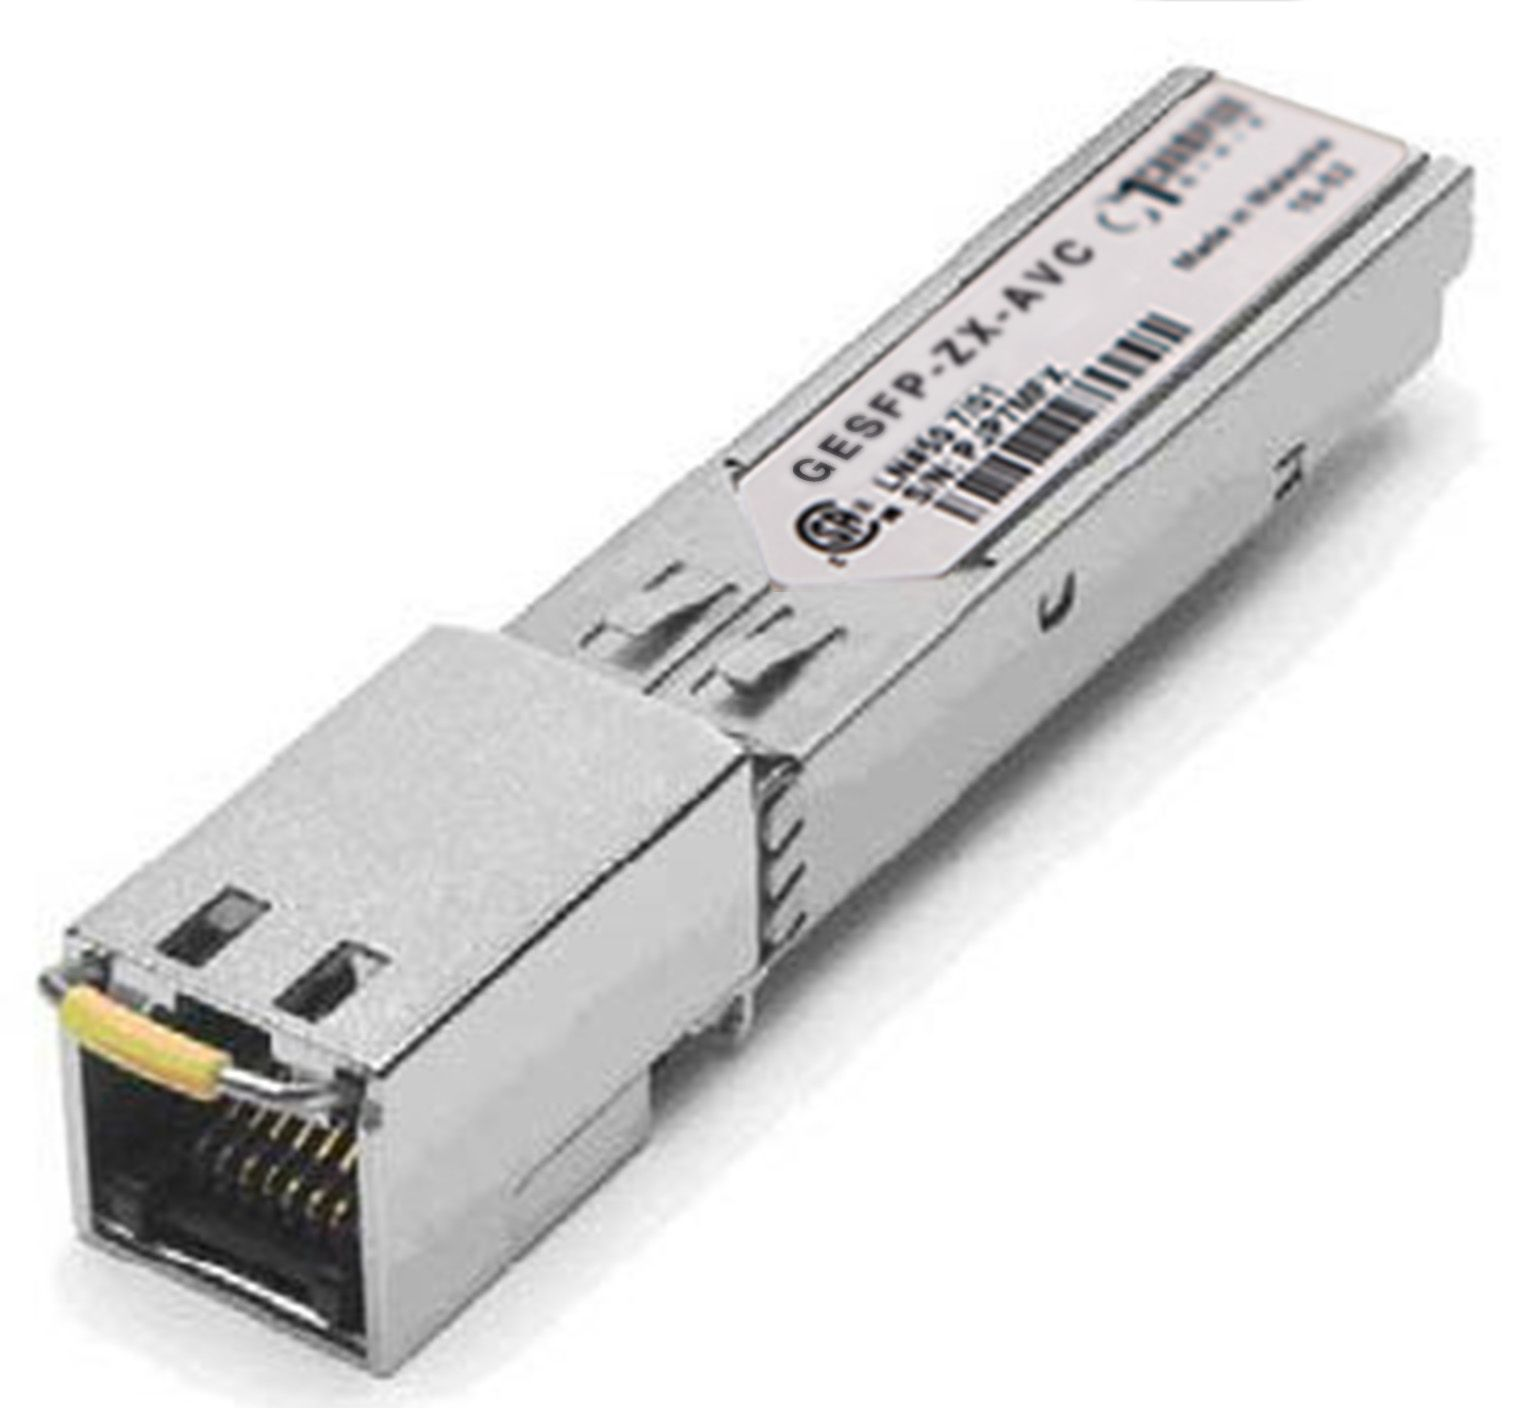 SFP 1000Base-ZX 80km Transceiver, Avaya compatible 720260185